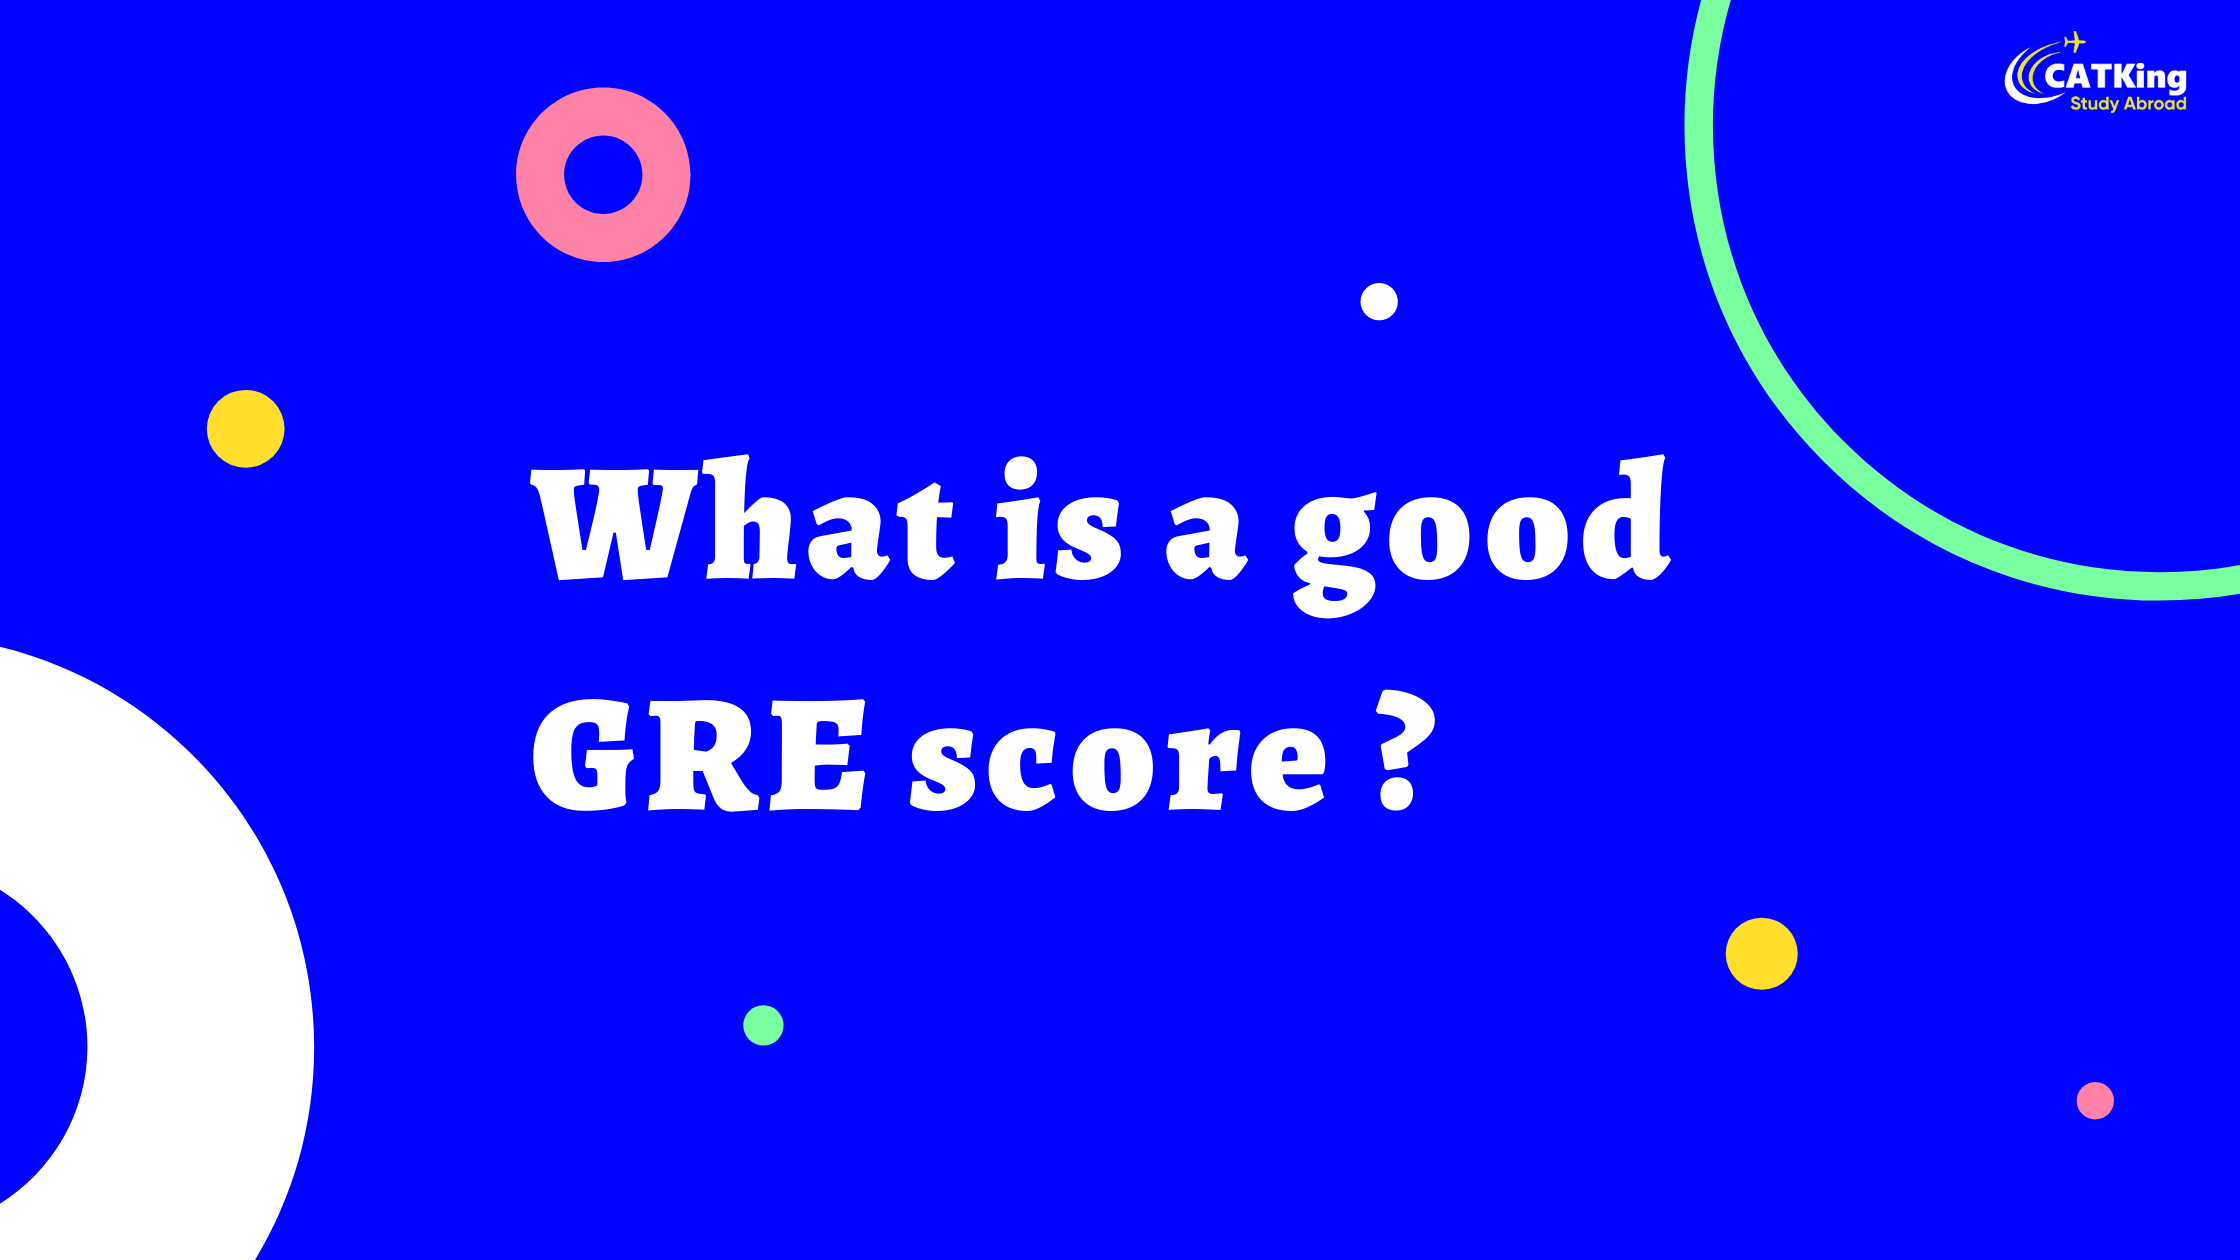 What is a good GRE score ?